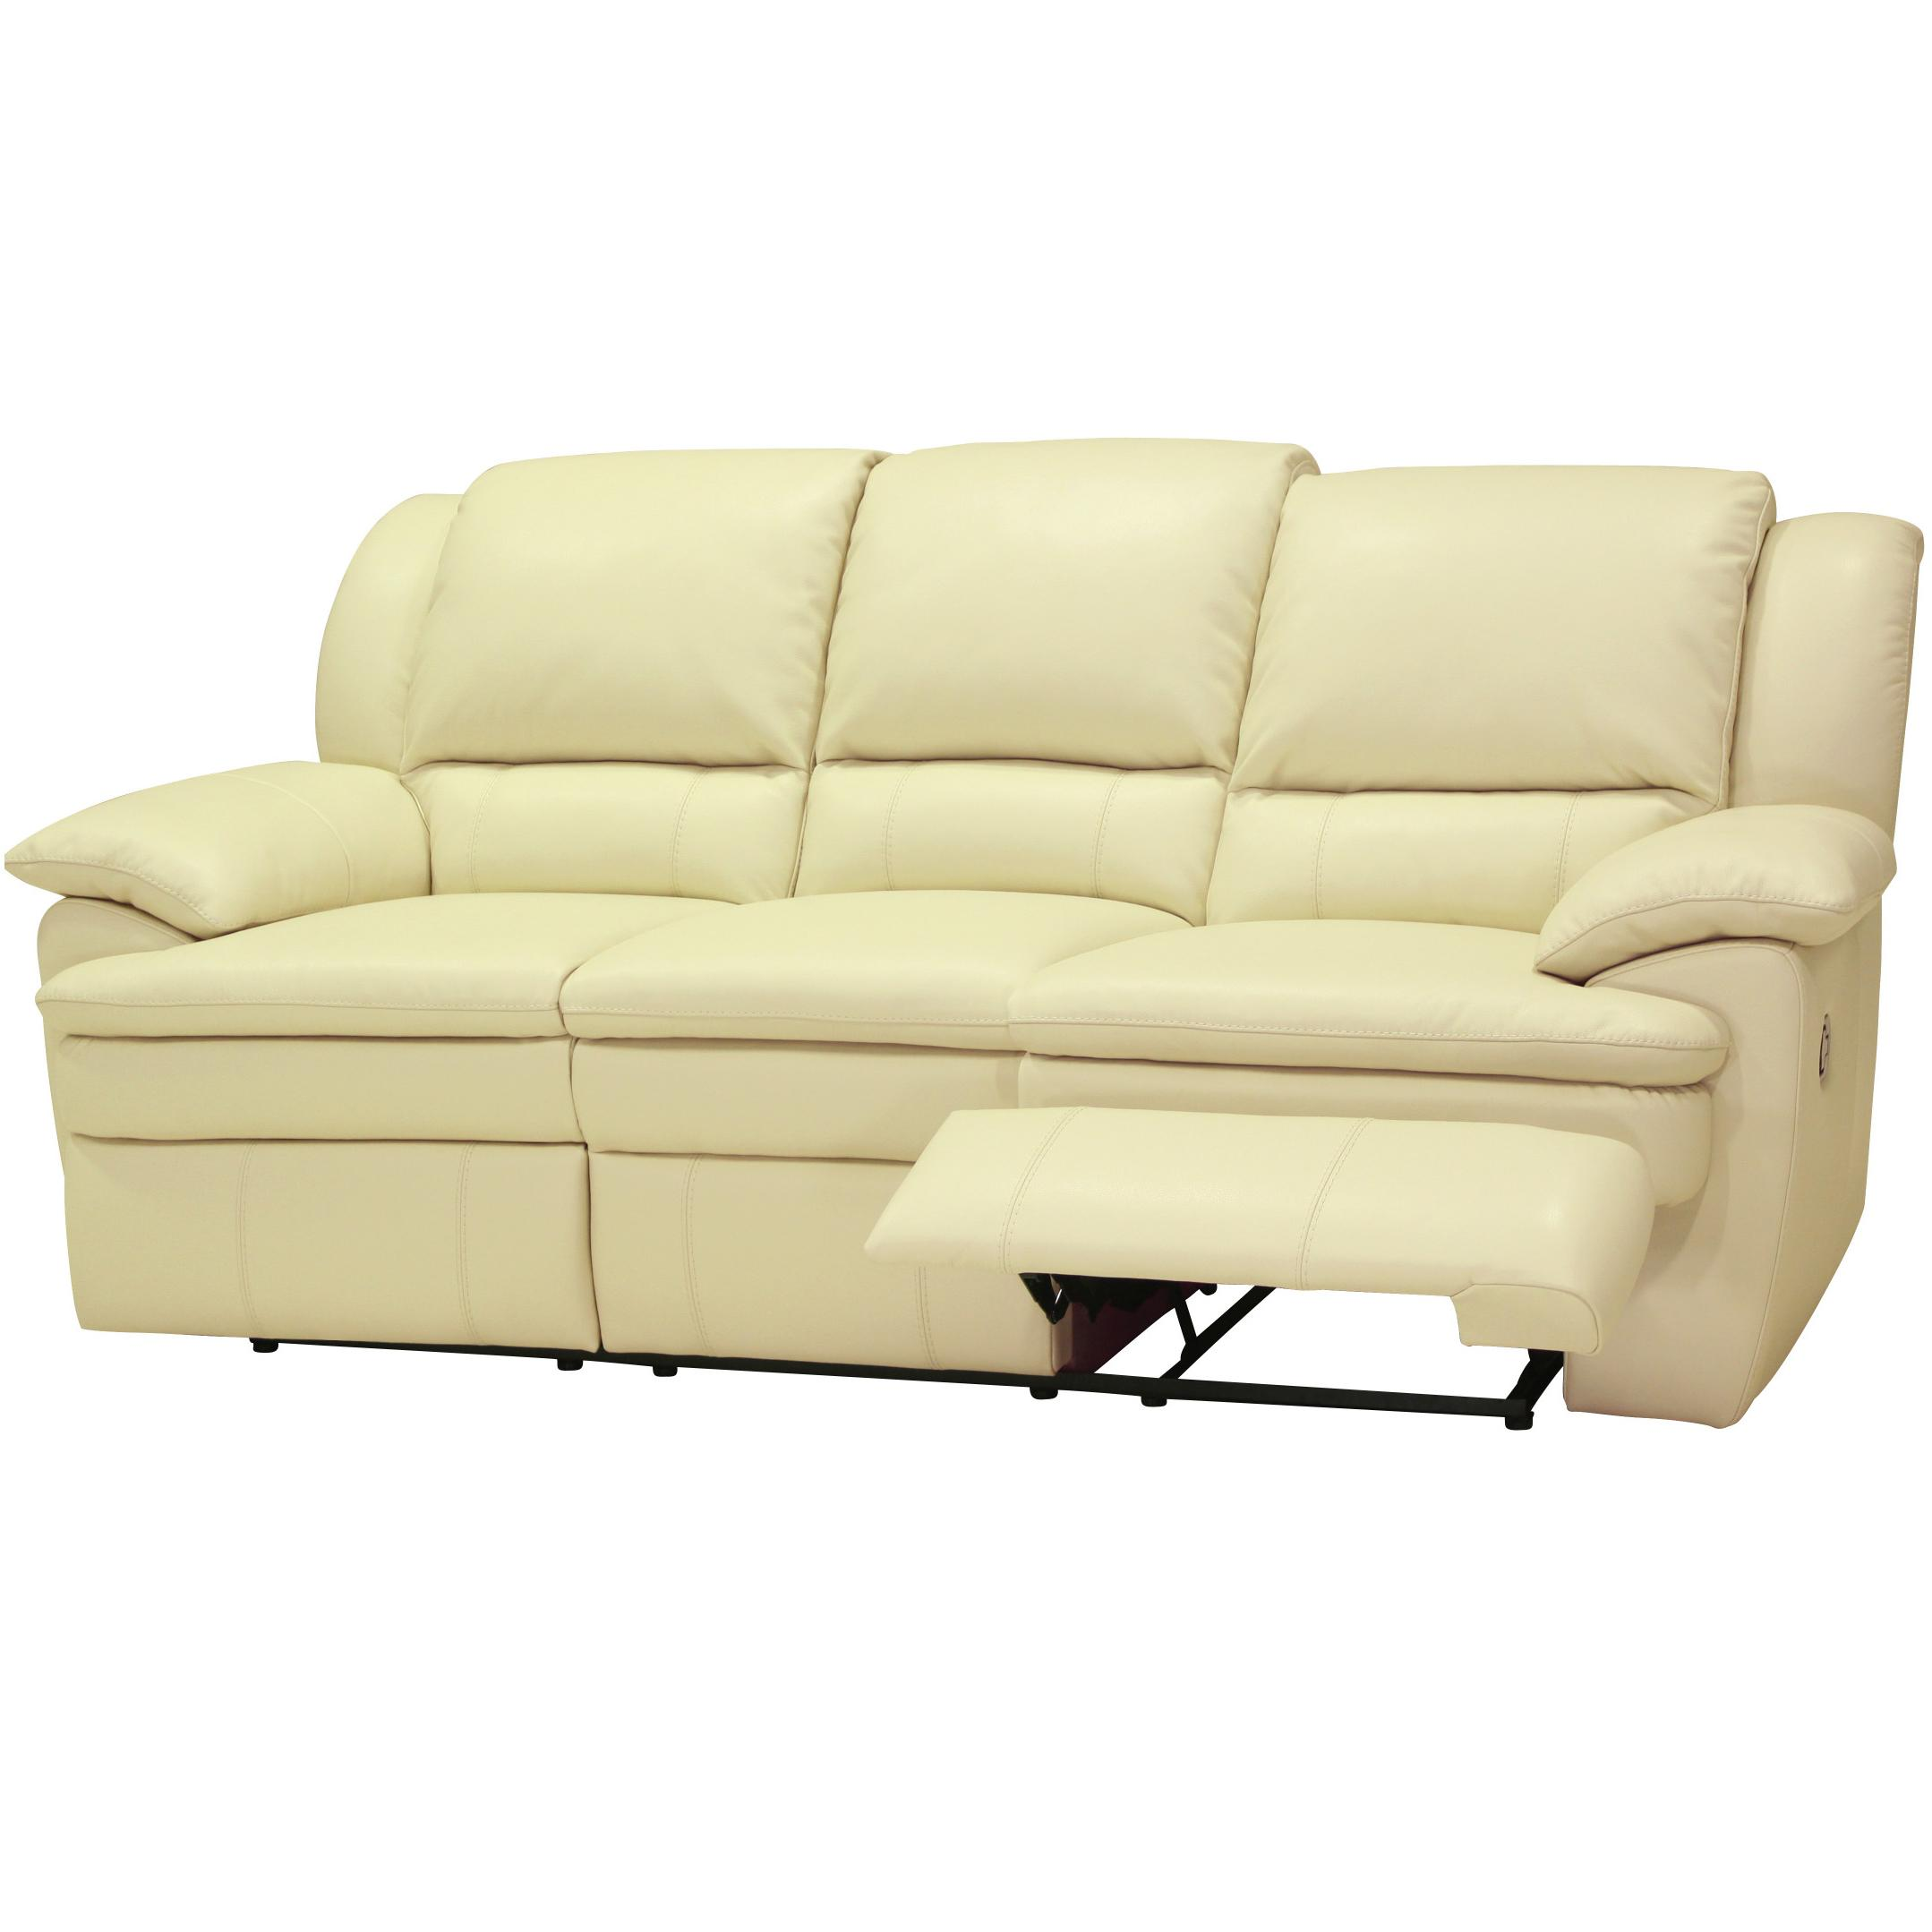 3 Seater Sofa with Motion